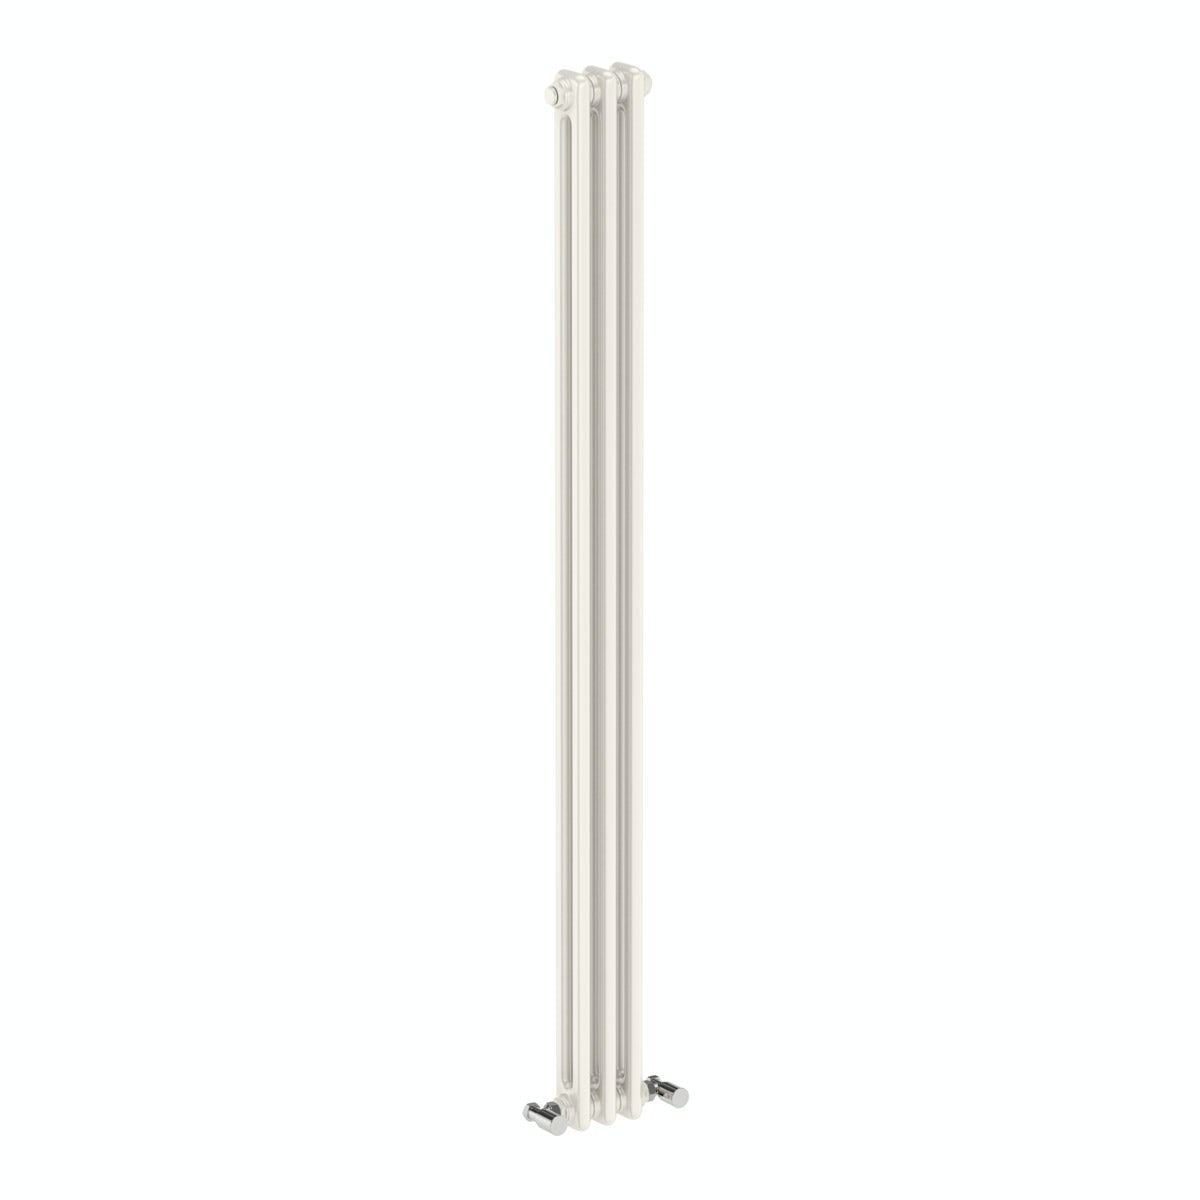 The Bath Co. Dulwich Vertical white double column radiator 1500 x 155 offer pack